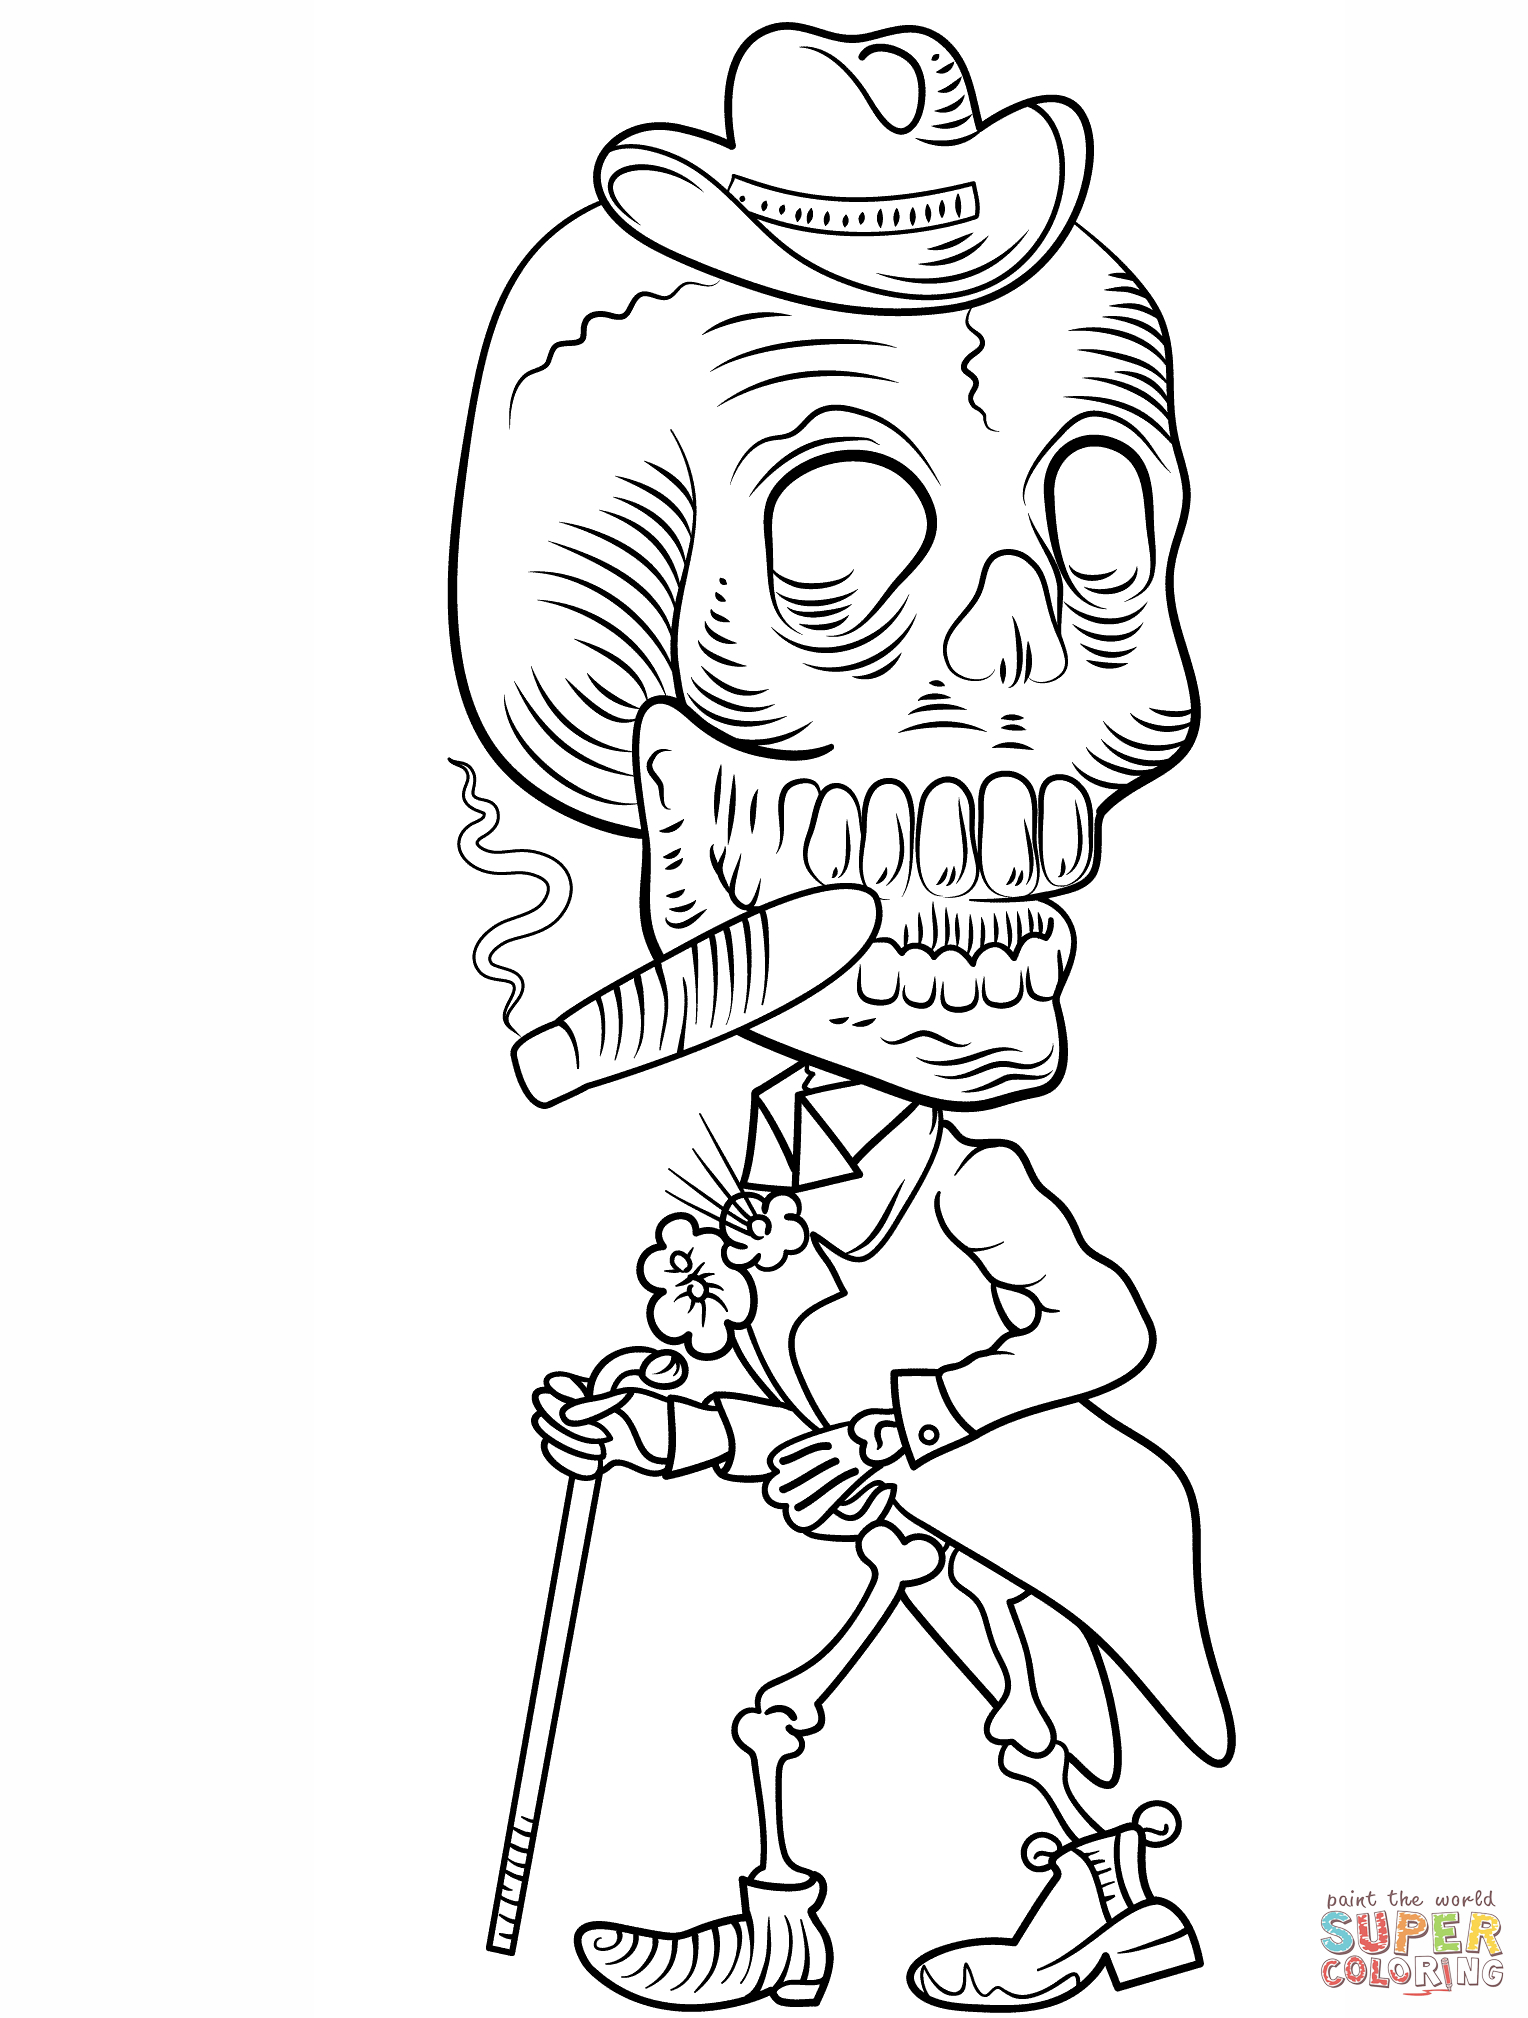 Day Of The Dead Skeleton Coloring Page | Free Printable Coloring Pages - Free Printable Skeleton Coloring Pages